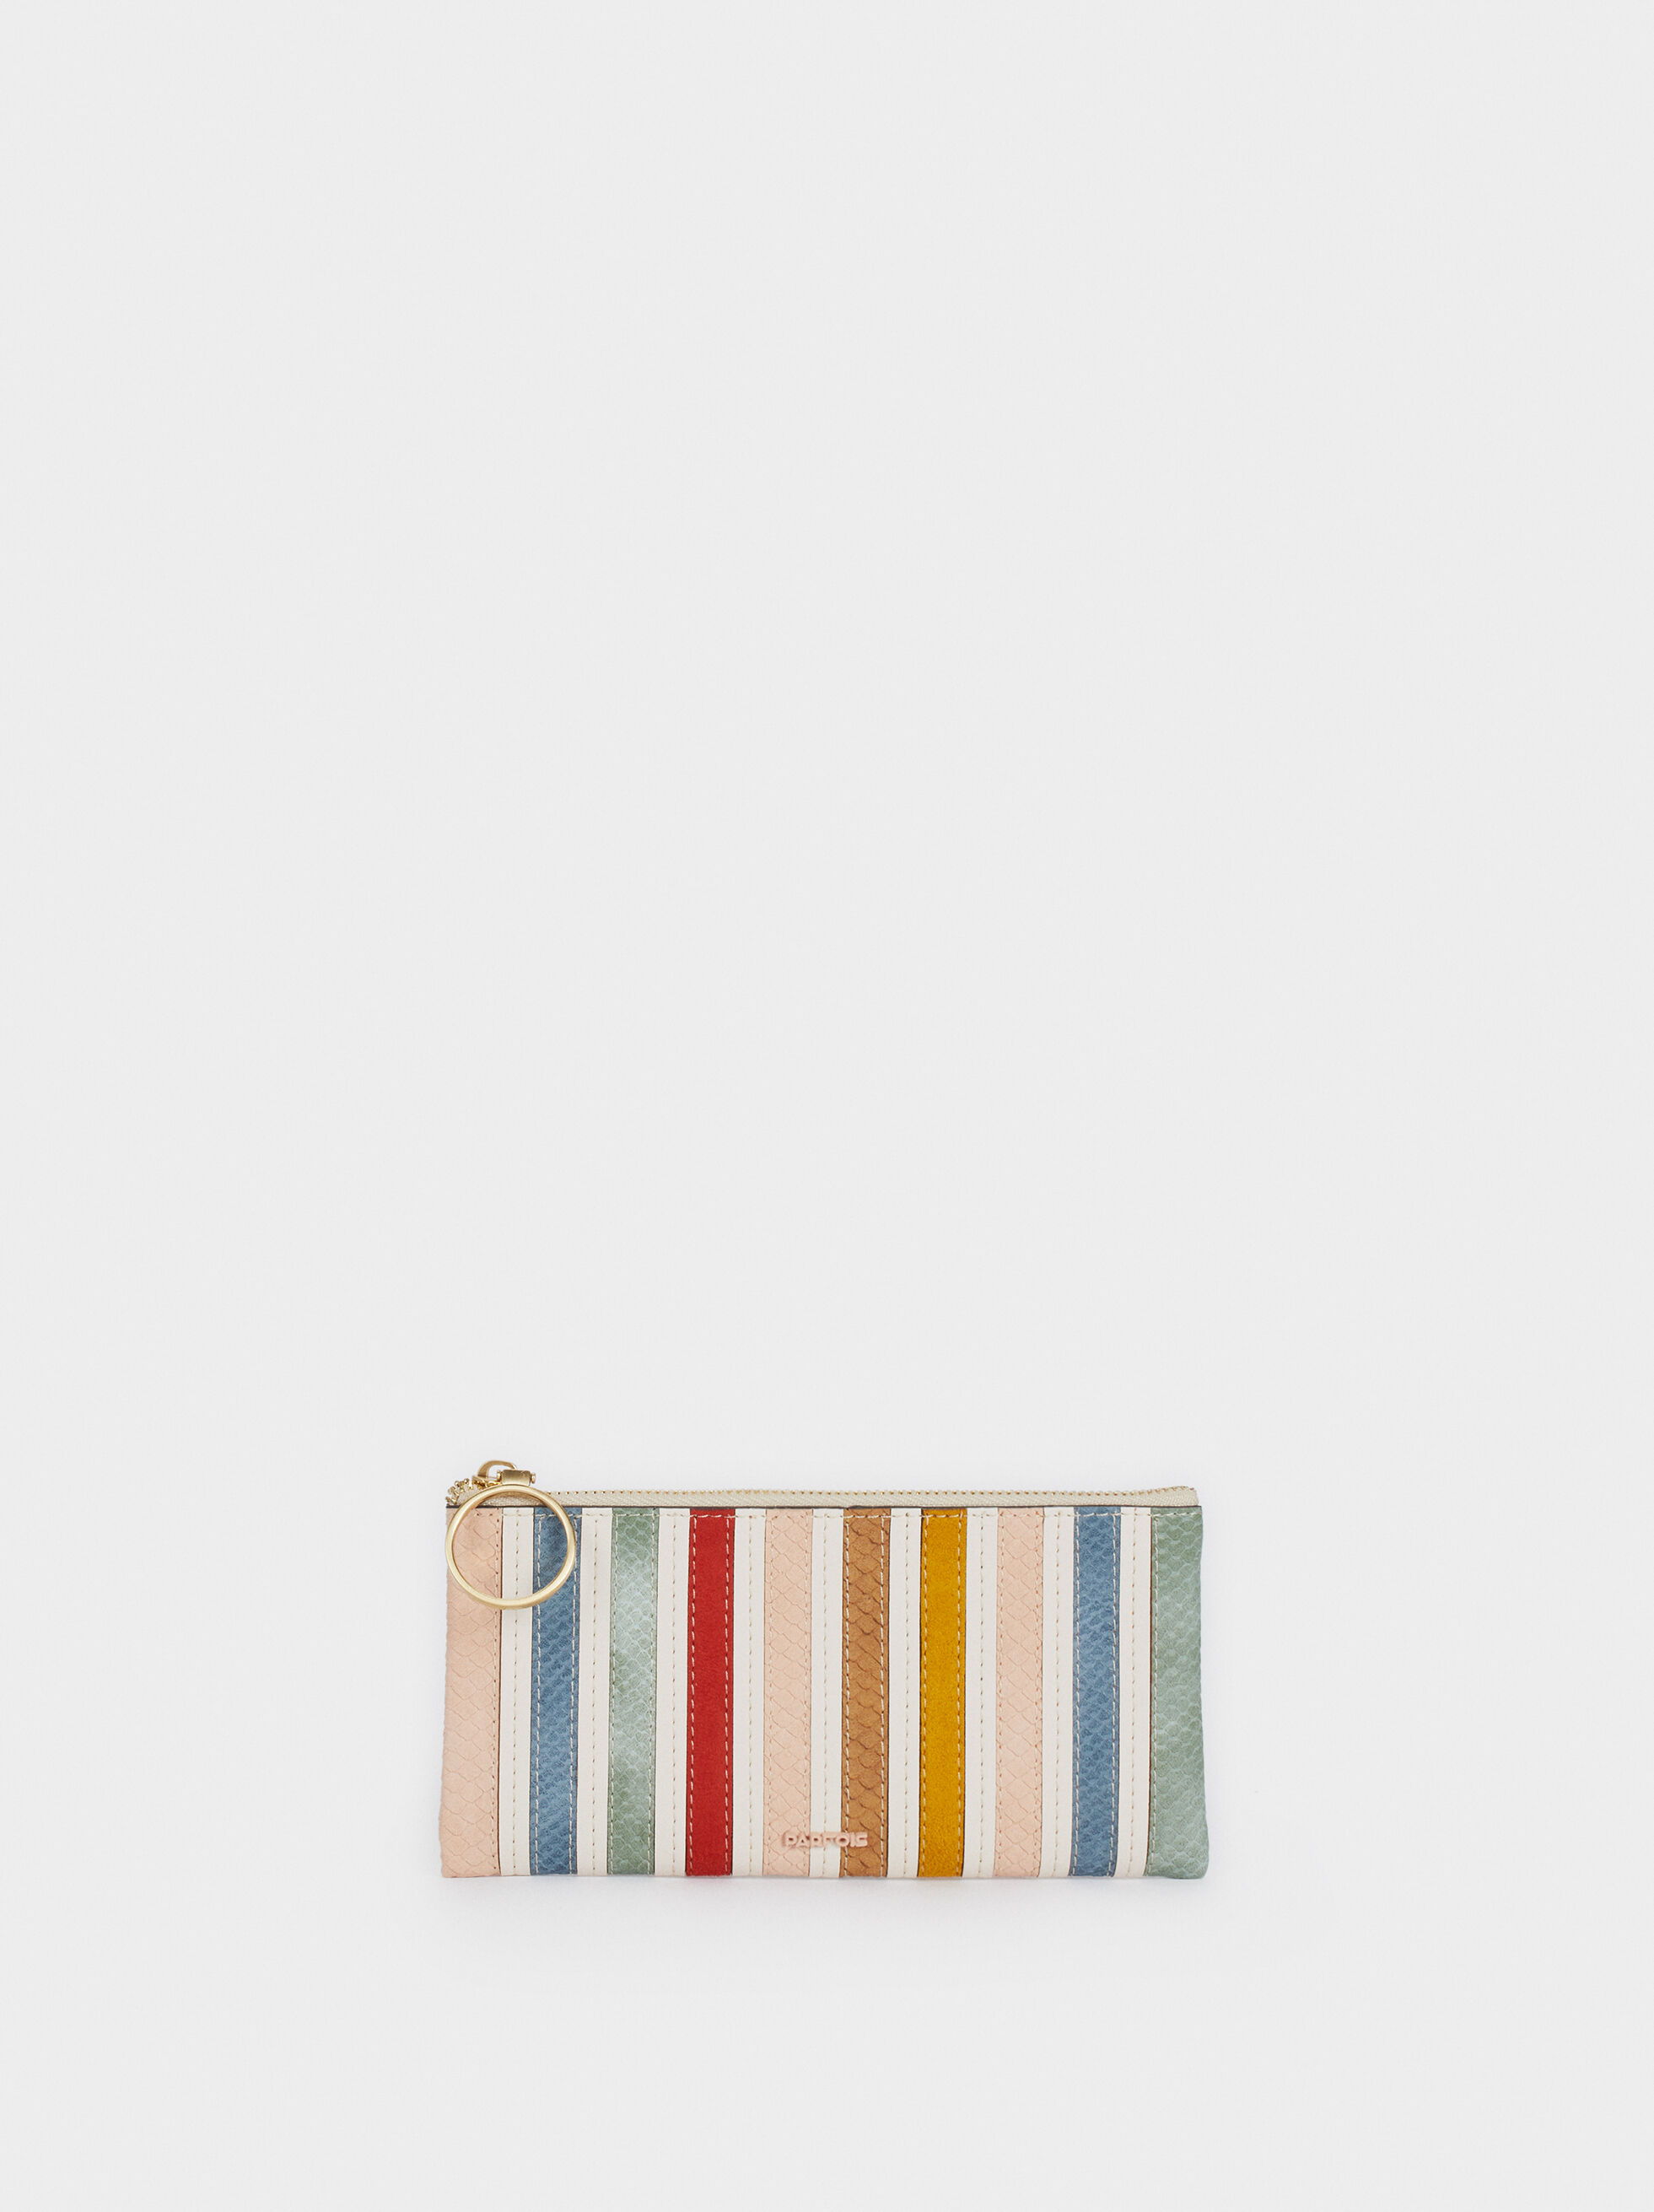 Multicolour Pencil Case, Ecru, hi-res